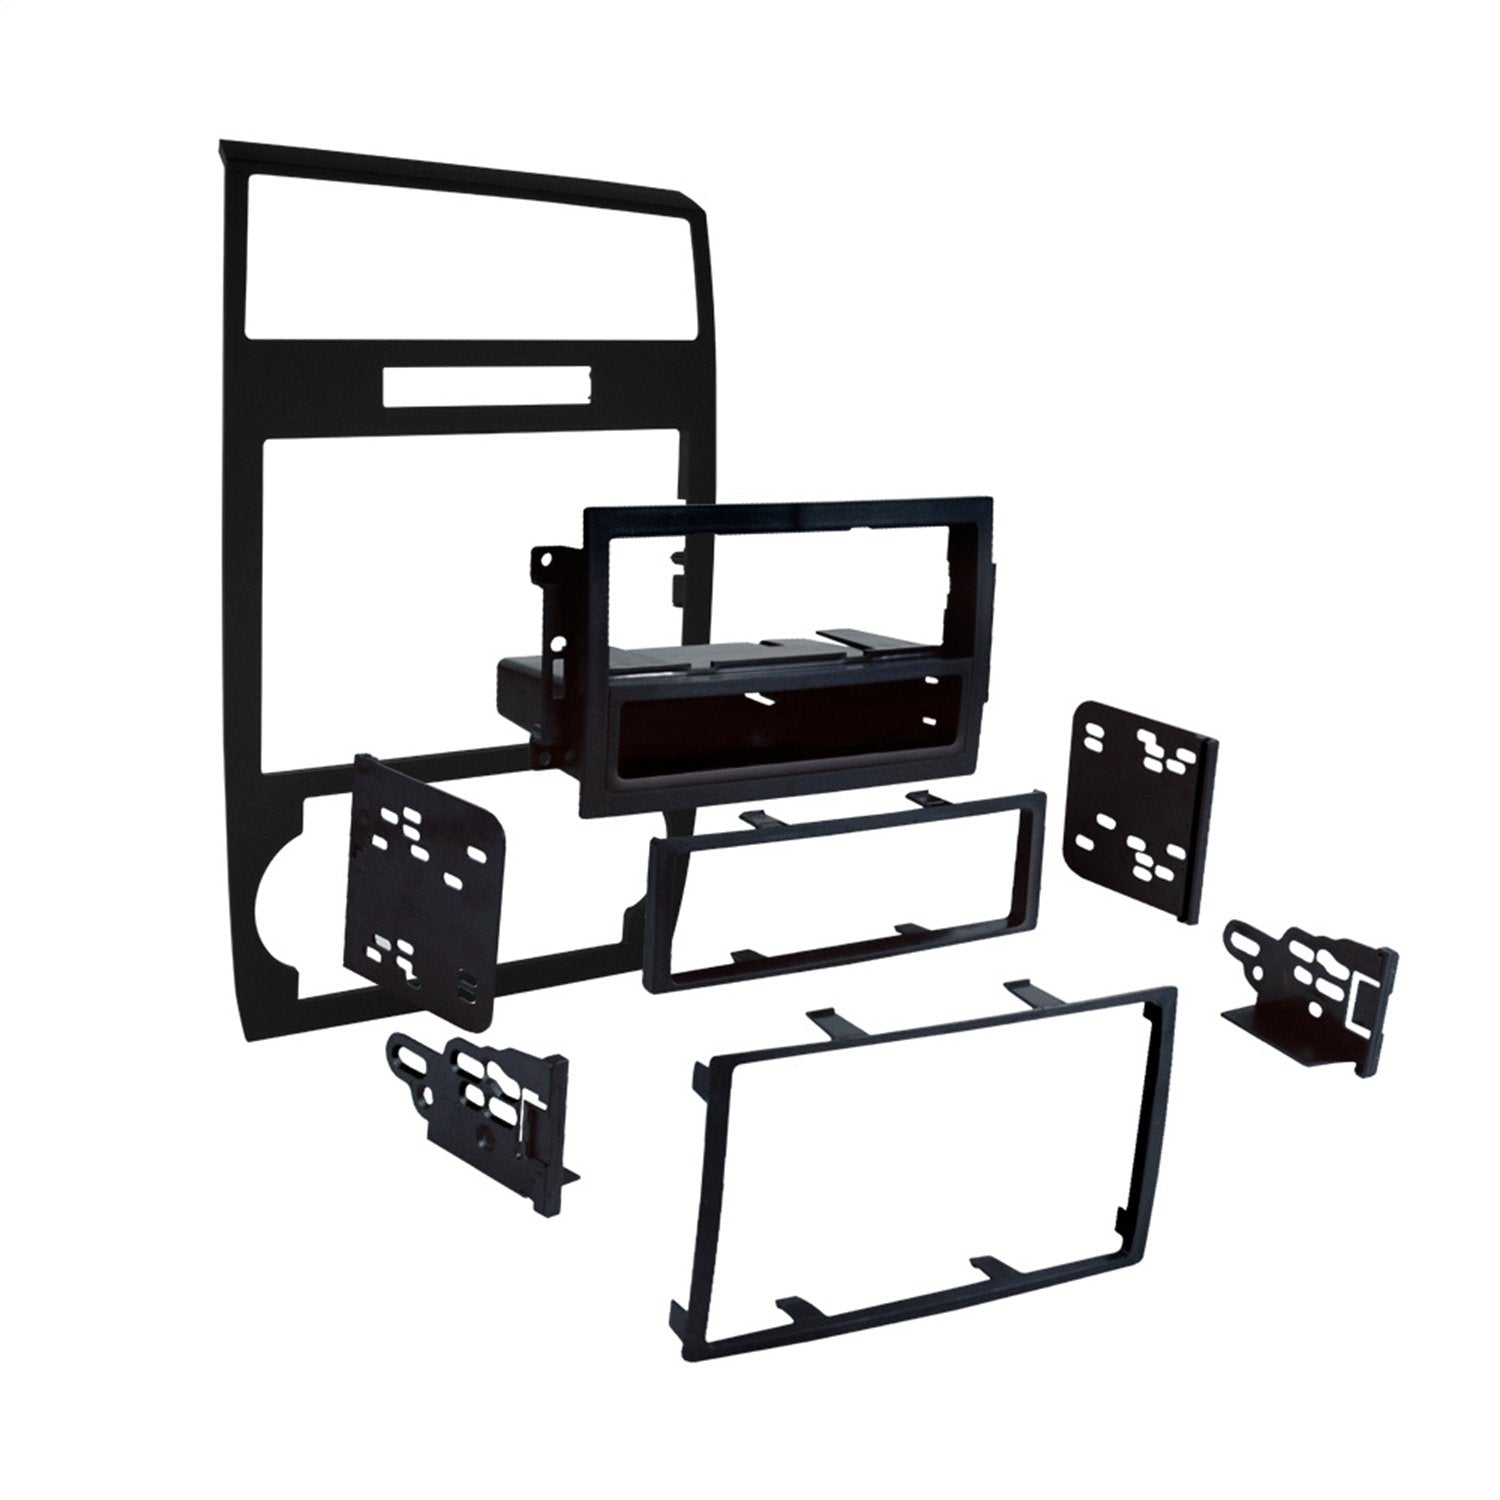 Metra 99-6519B Single/Double DIN Installation Dash Kit for Select Dodge Vehicles (Black)